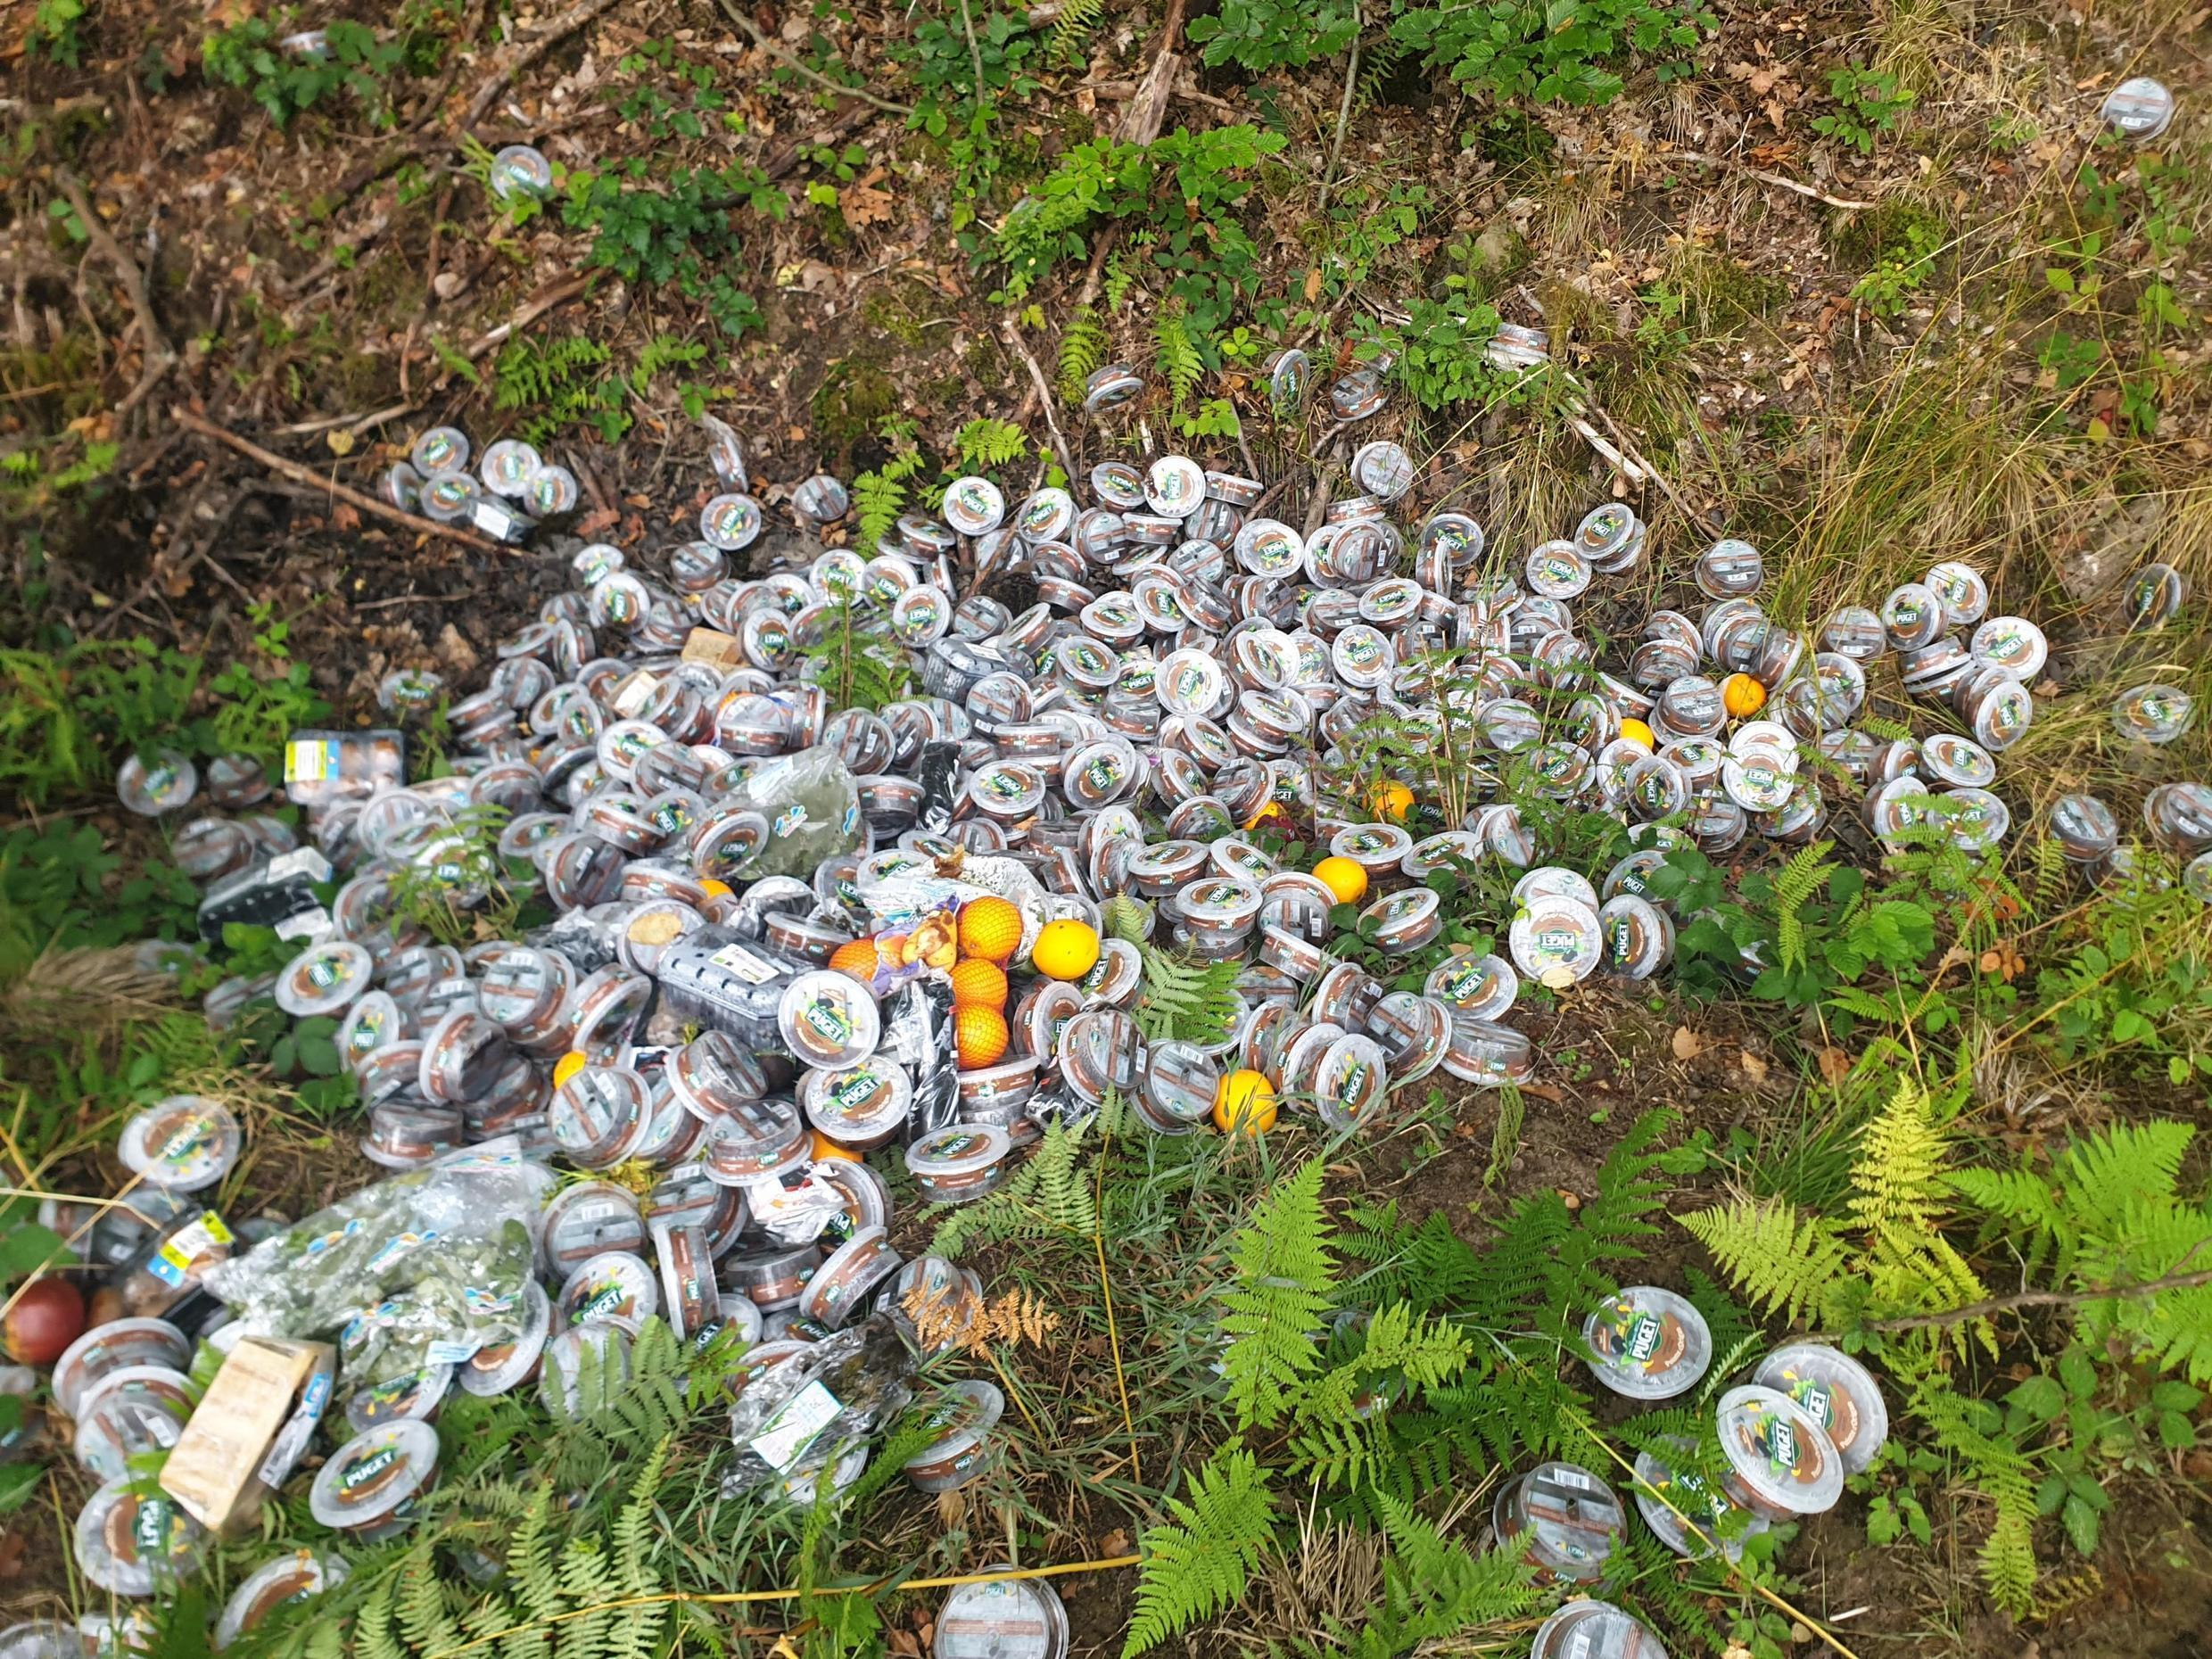 Piles of expired tapenade containers were found dumped in several different locations around northern France (Photo: Association Mormal Forêt Agir/Facebook)